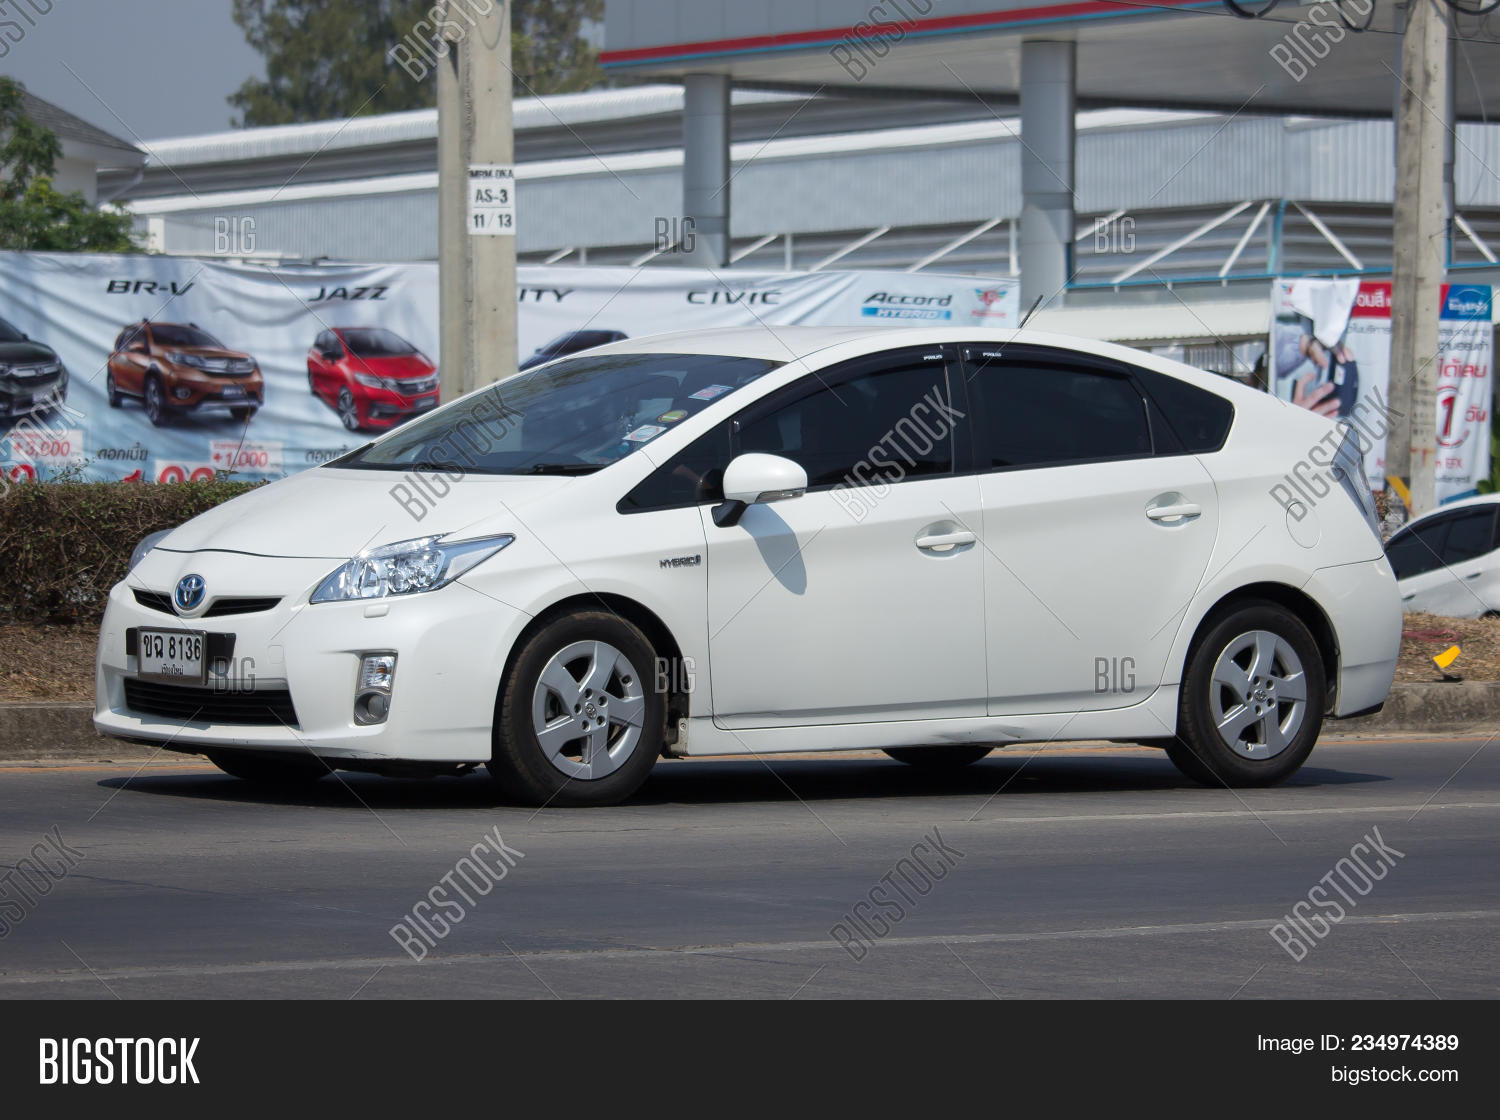 Chiang Mai Thailand March 13 2018 Private Car Toyota Prius Hybrid System On Road No 1001 8 Km From Chiangmai Business Area